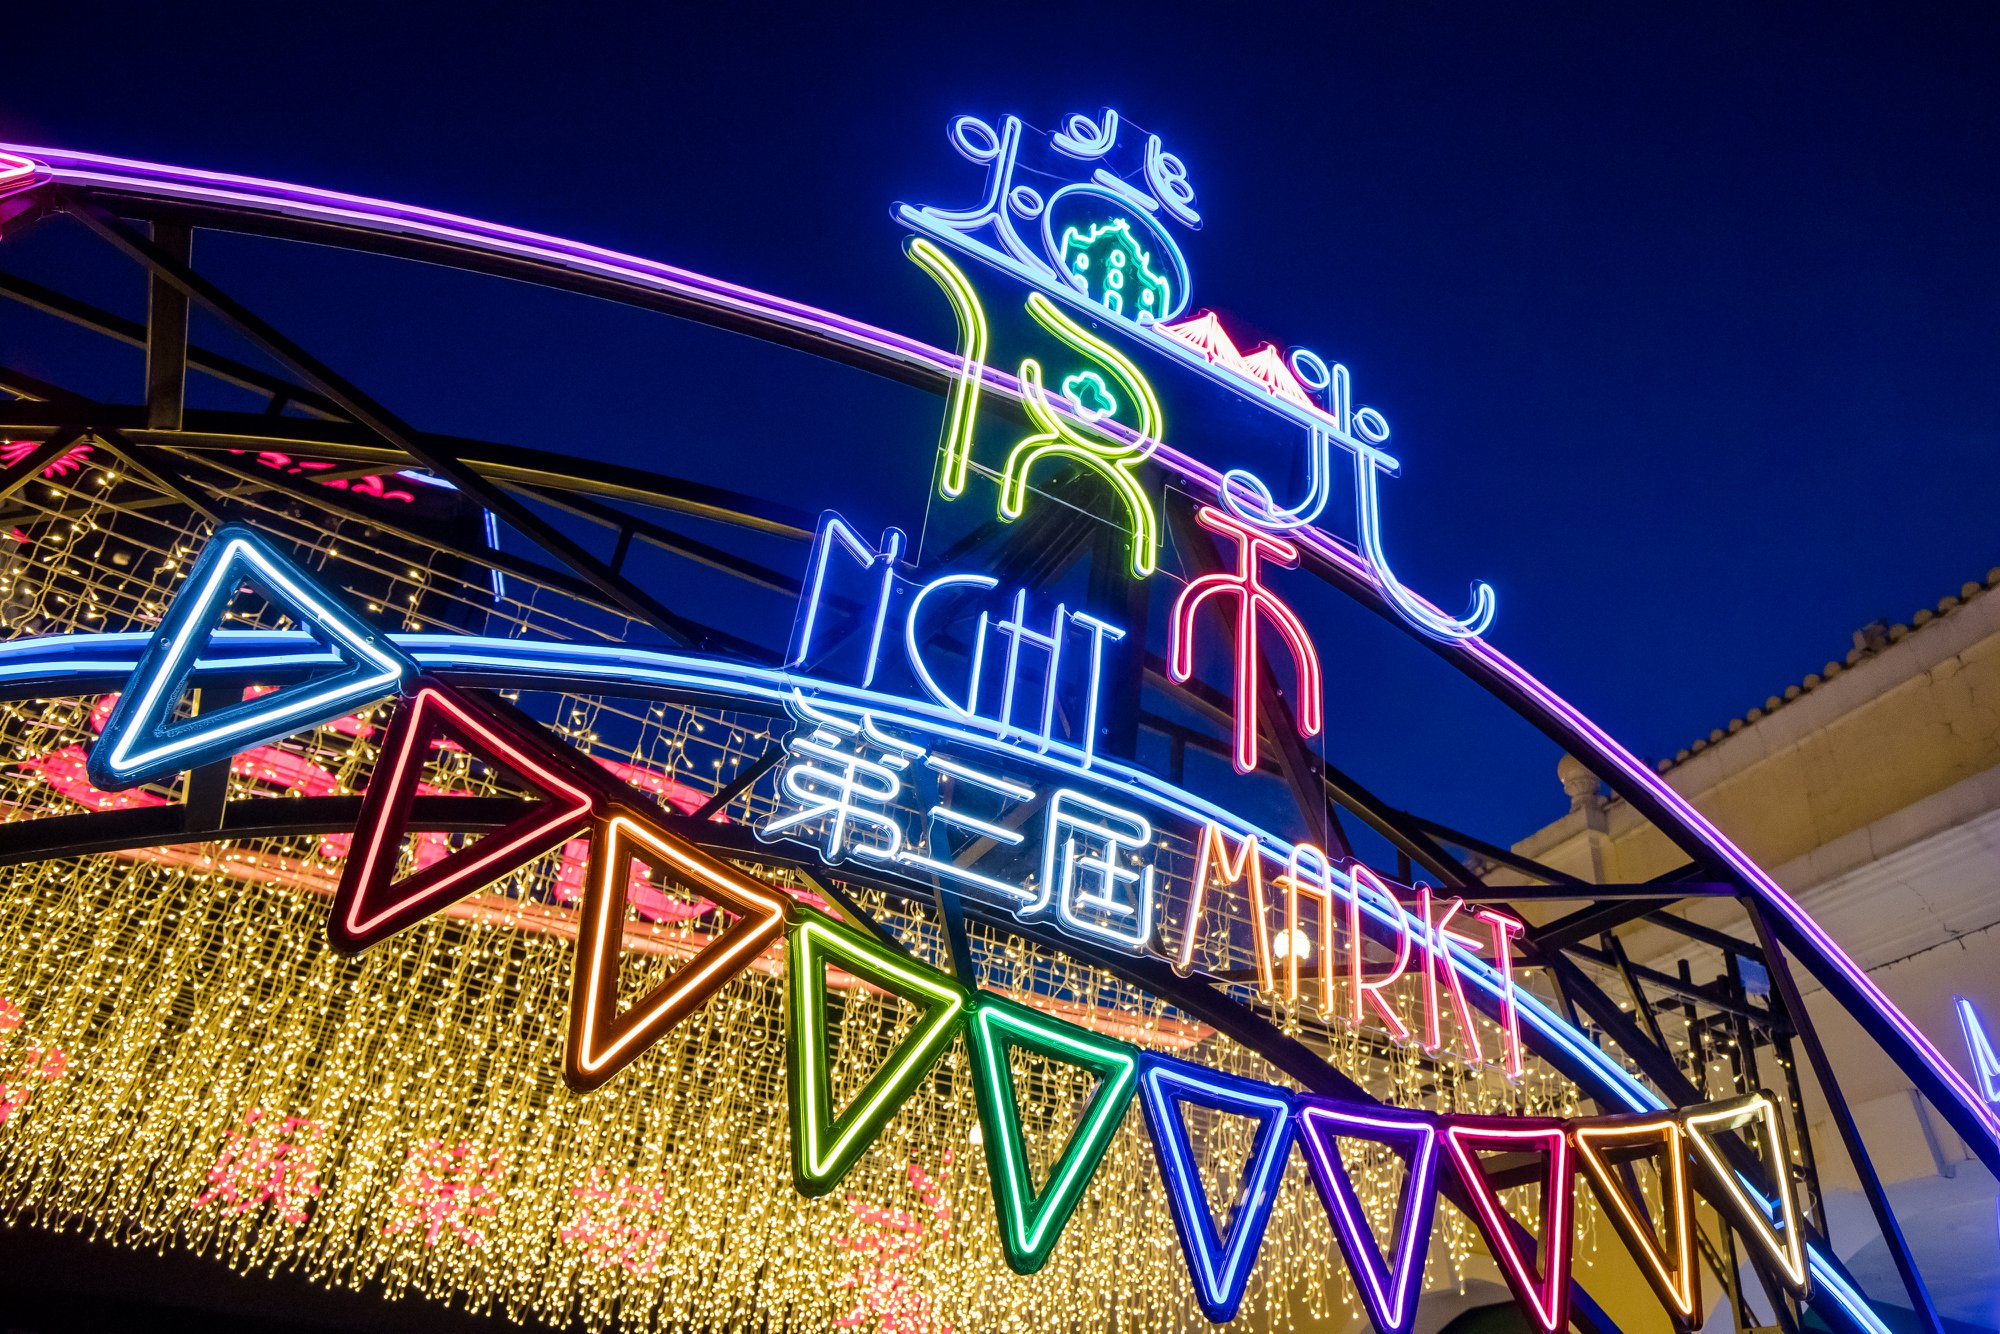 Night Market third edition macau fishermans wharf macau events august